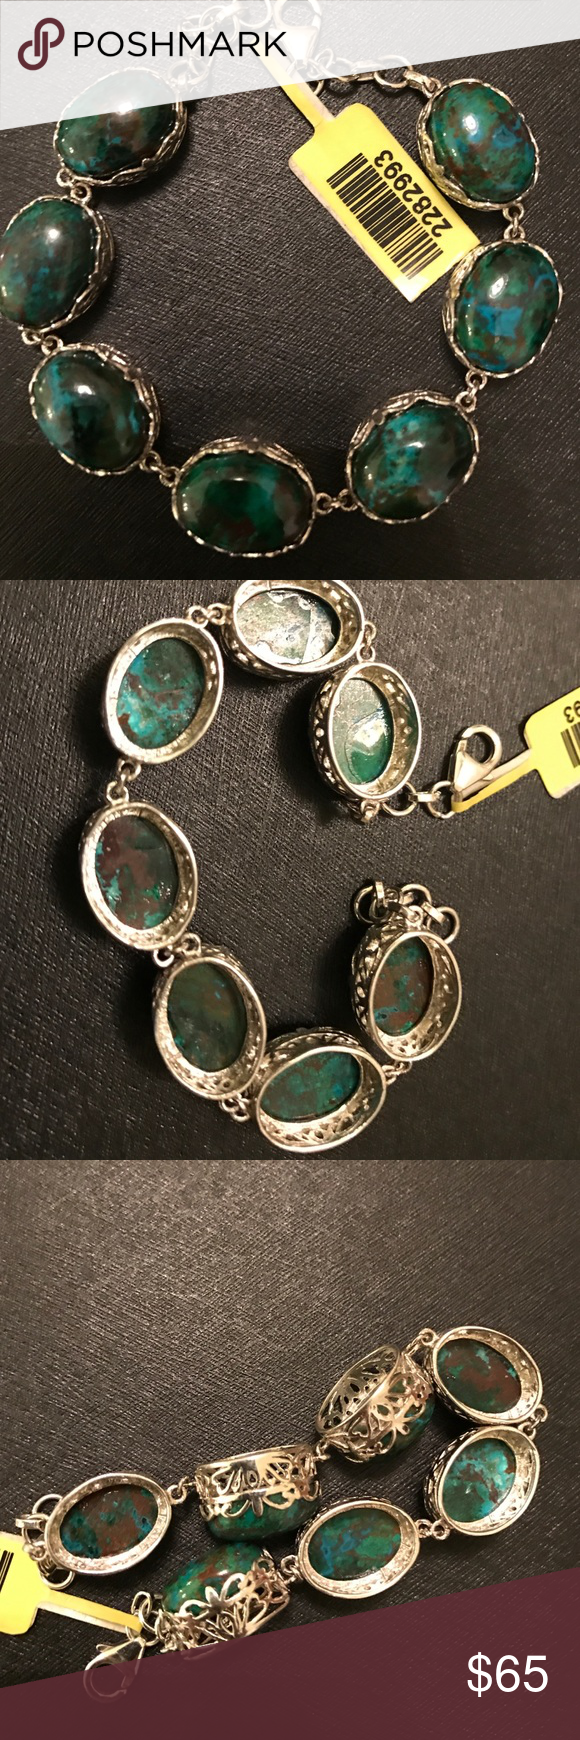 Australian Chrysocolla Bracelet Nice piece of jewelry. Stone is very unique. Platinum overlay sterling silver. Size 7.5 inch. Jewelry Bracelets